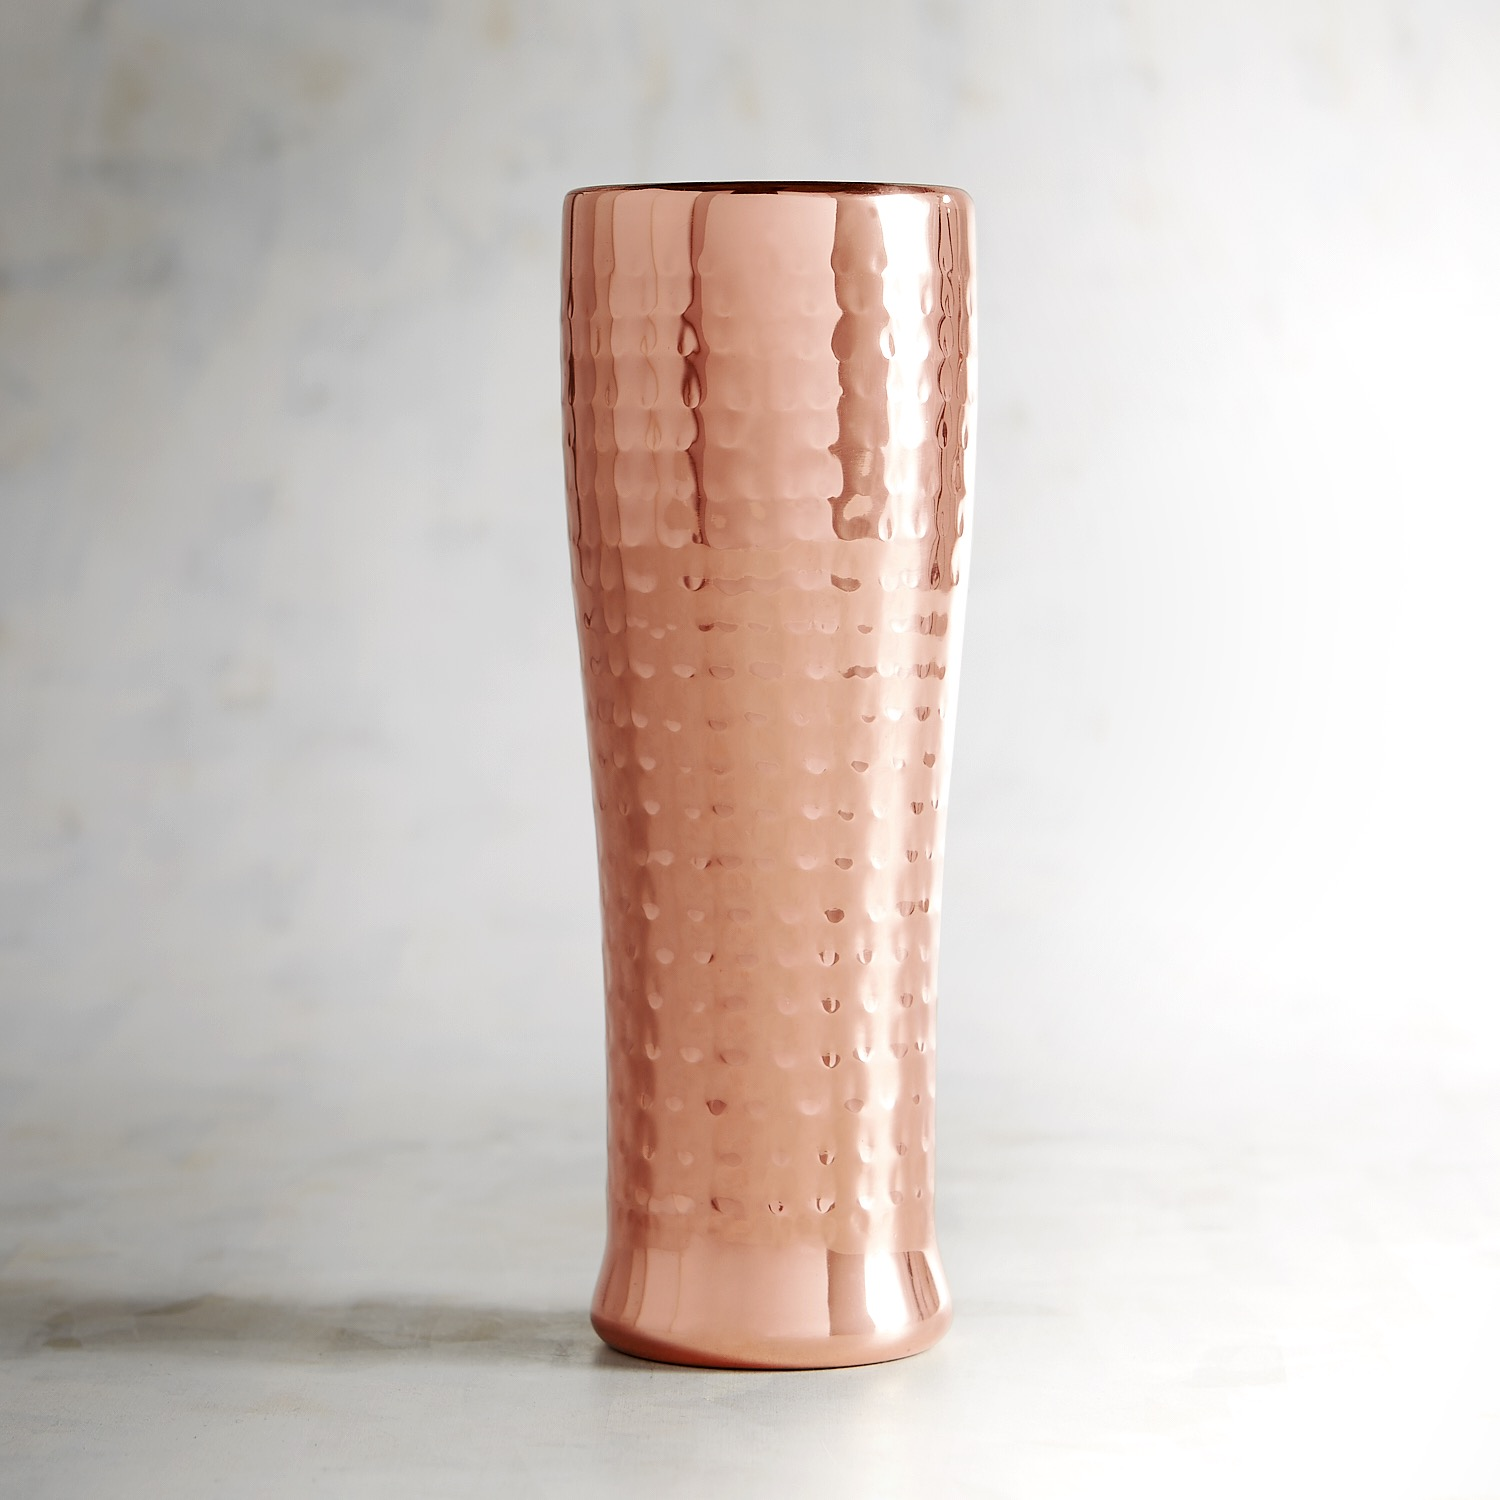 Hammered Double-Walled Copper-Plated Beer Glass